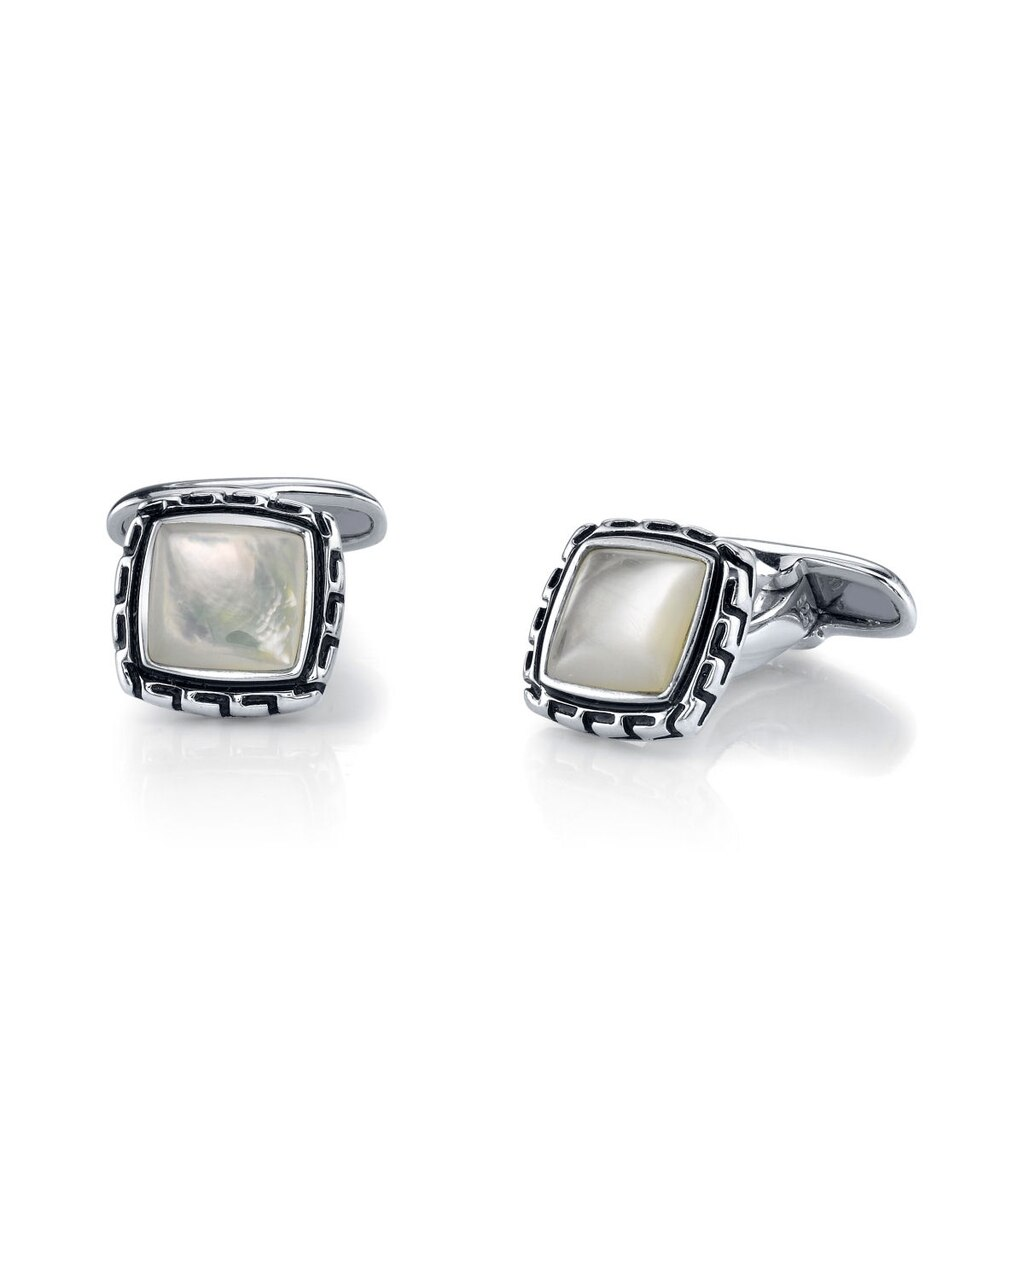 These stunning cufflinks feature beautiful mother of pearl